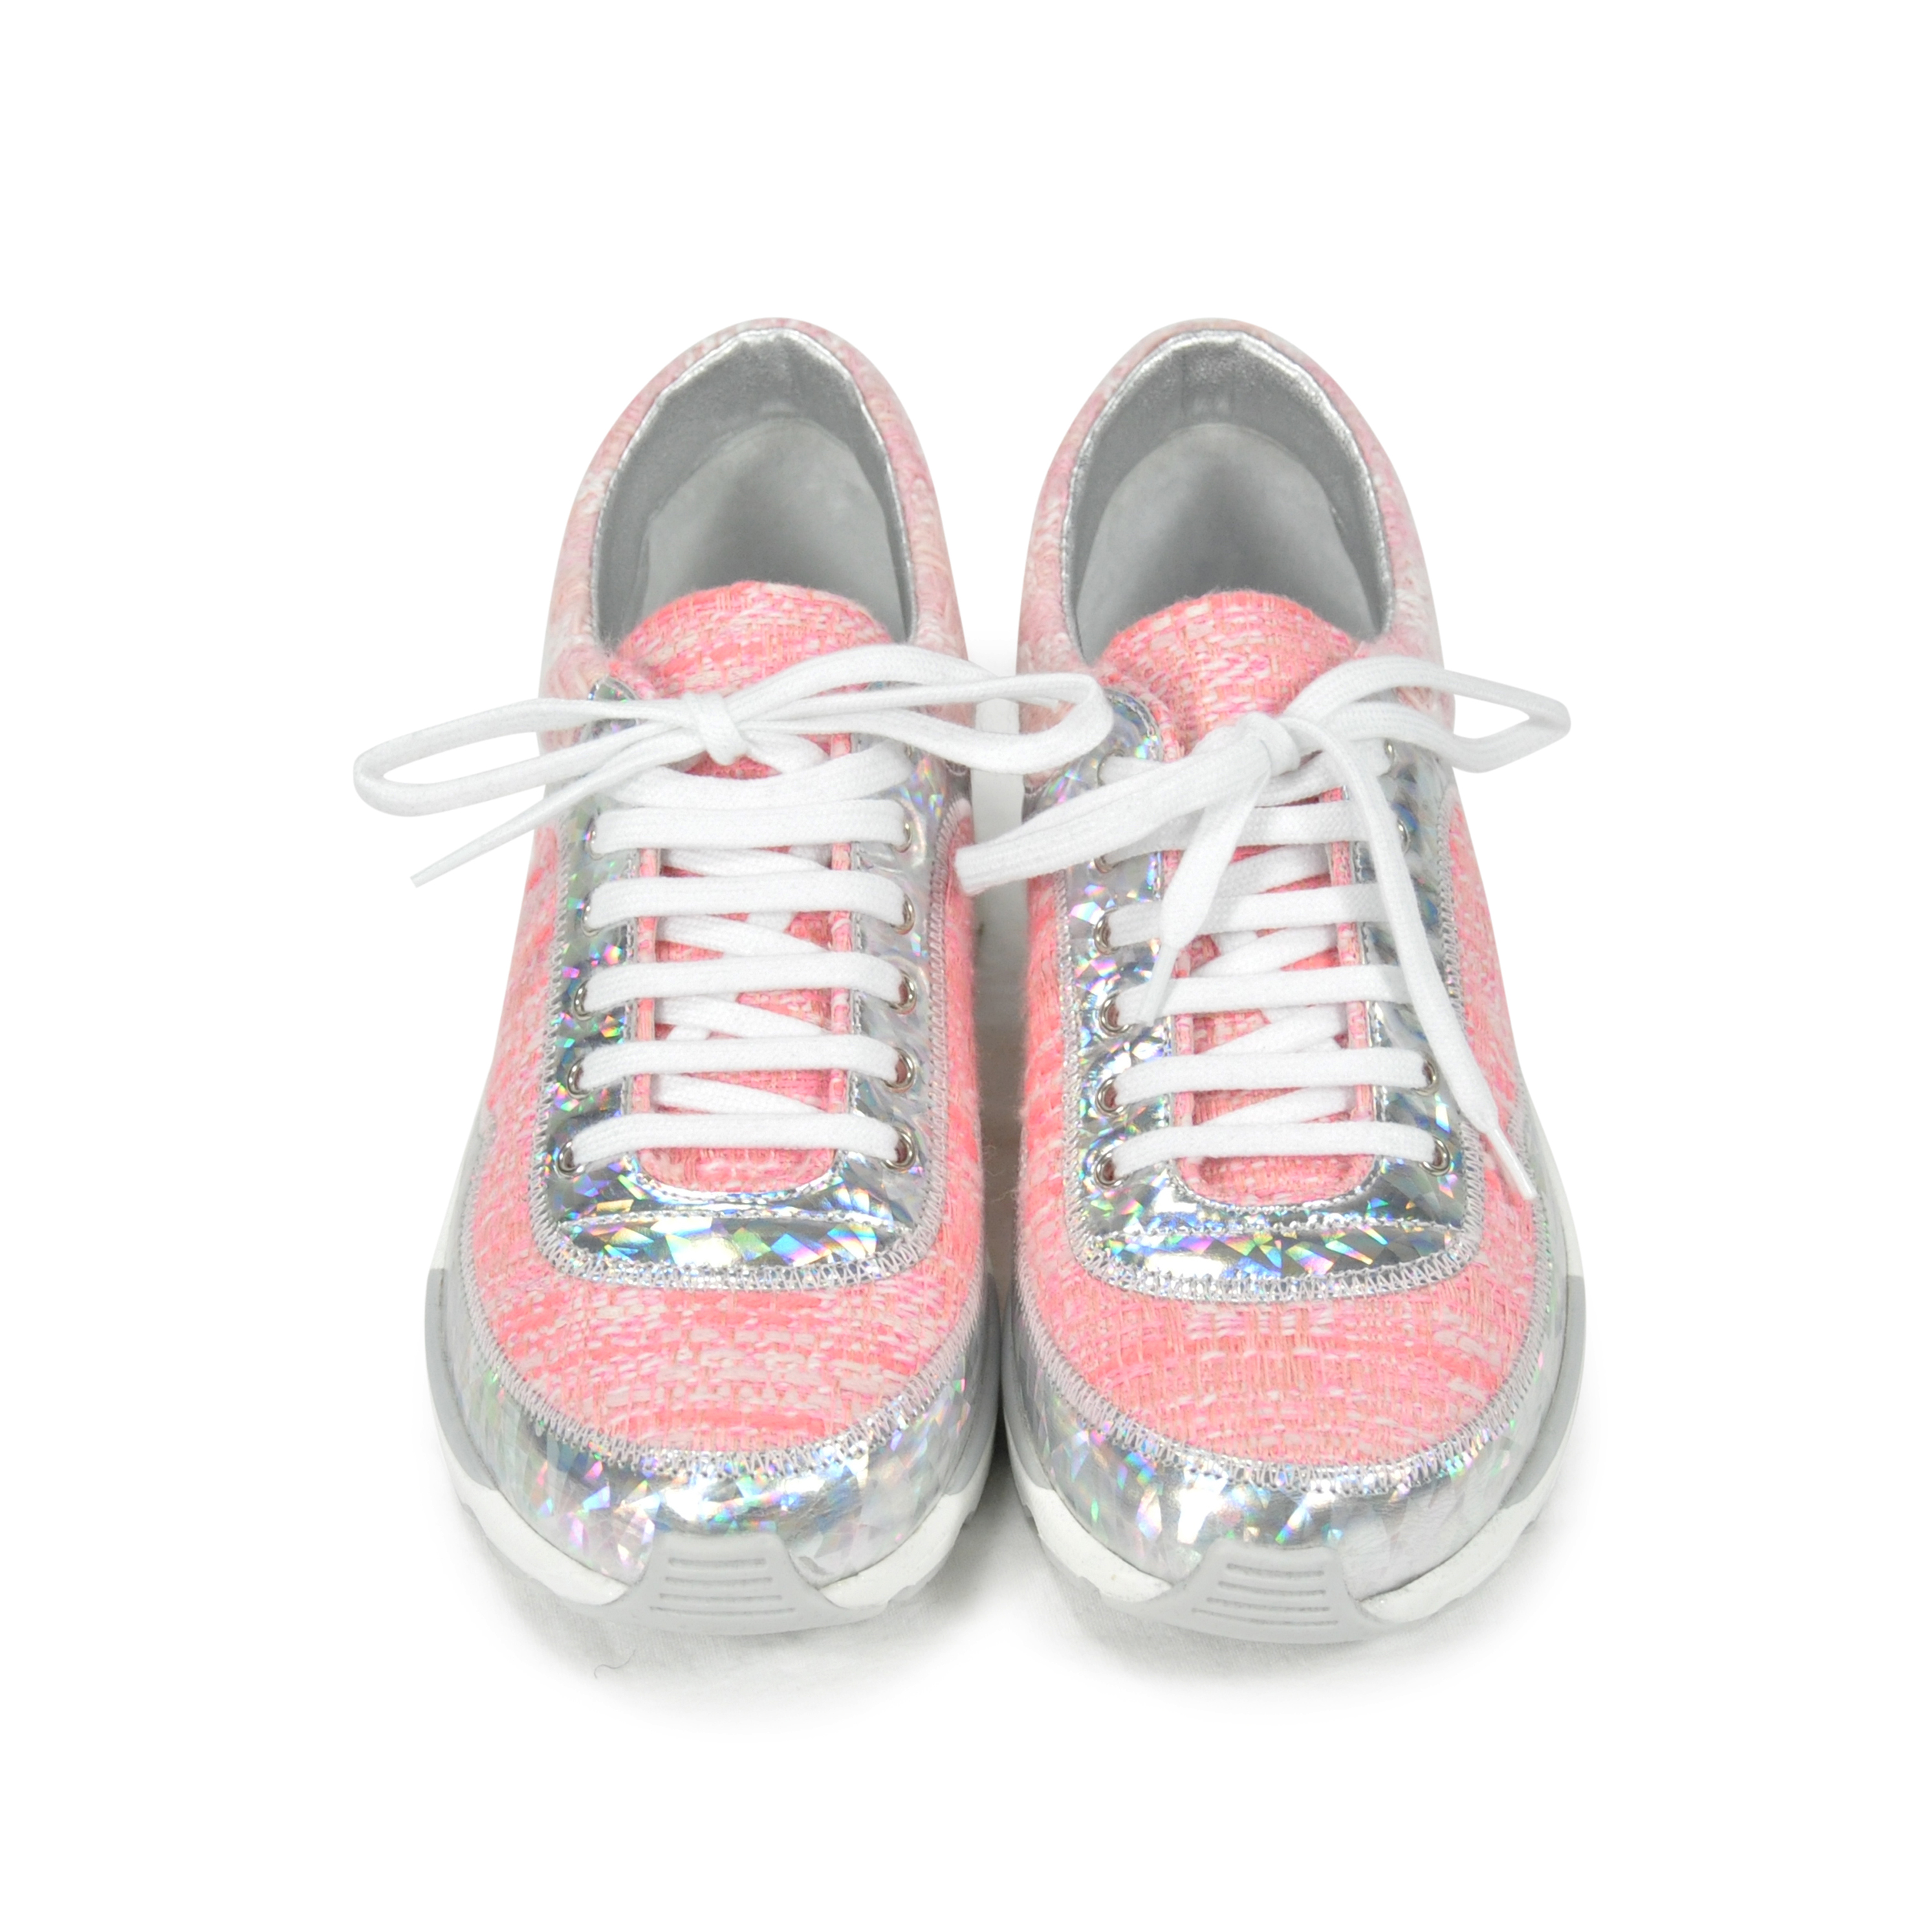 296eef306 Authentic Second Hand Chanel Tweed Lace Up Sneakers (PSS-200-00253) - THE  FIFTH COLLECTION